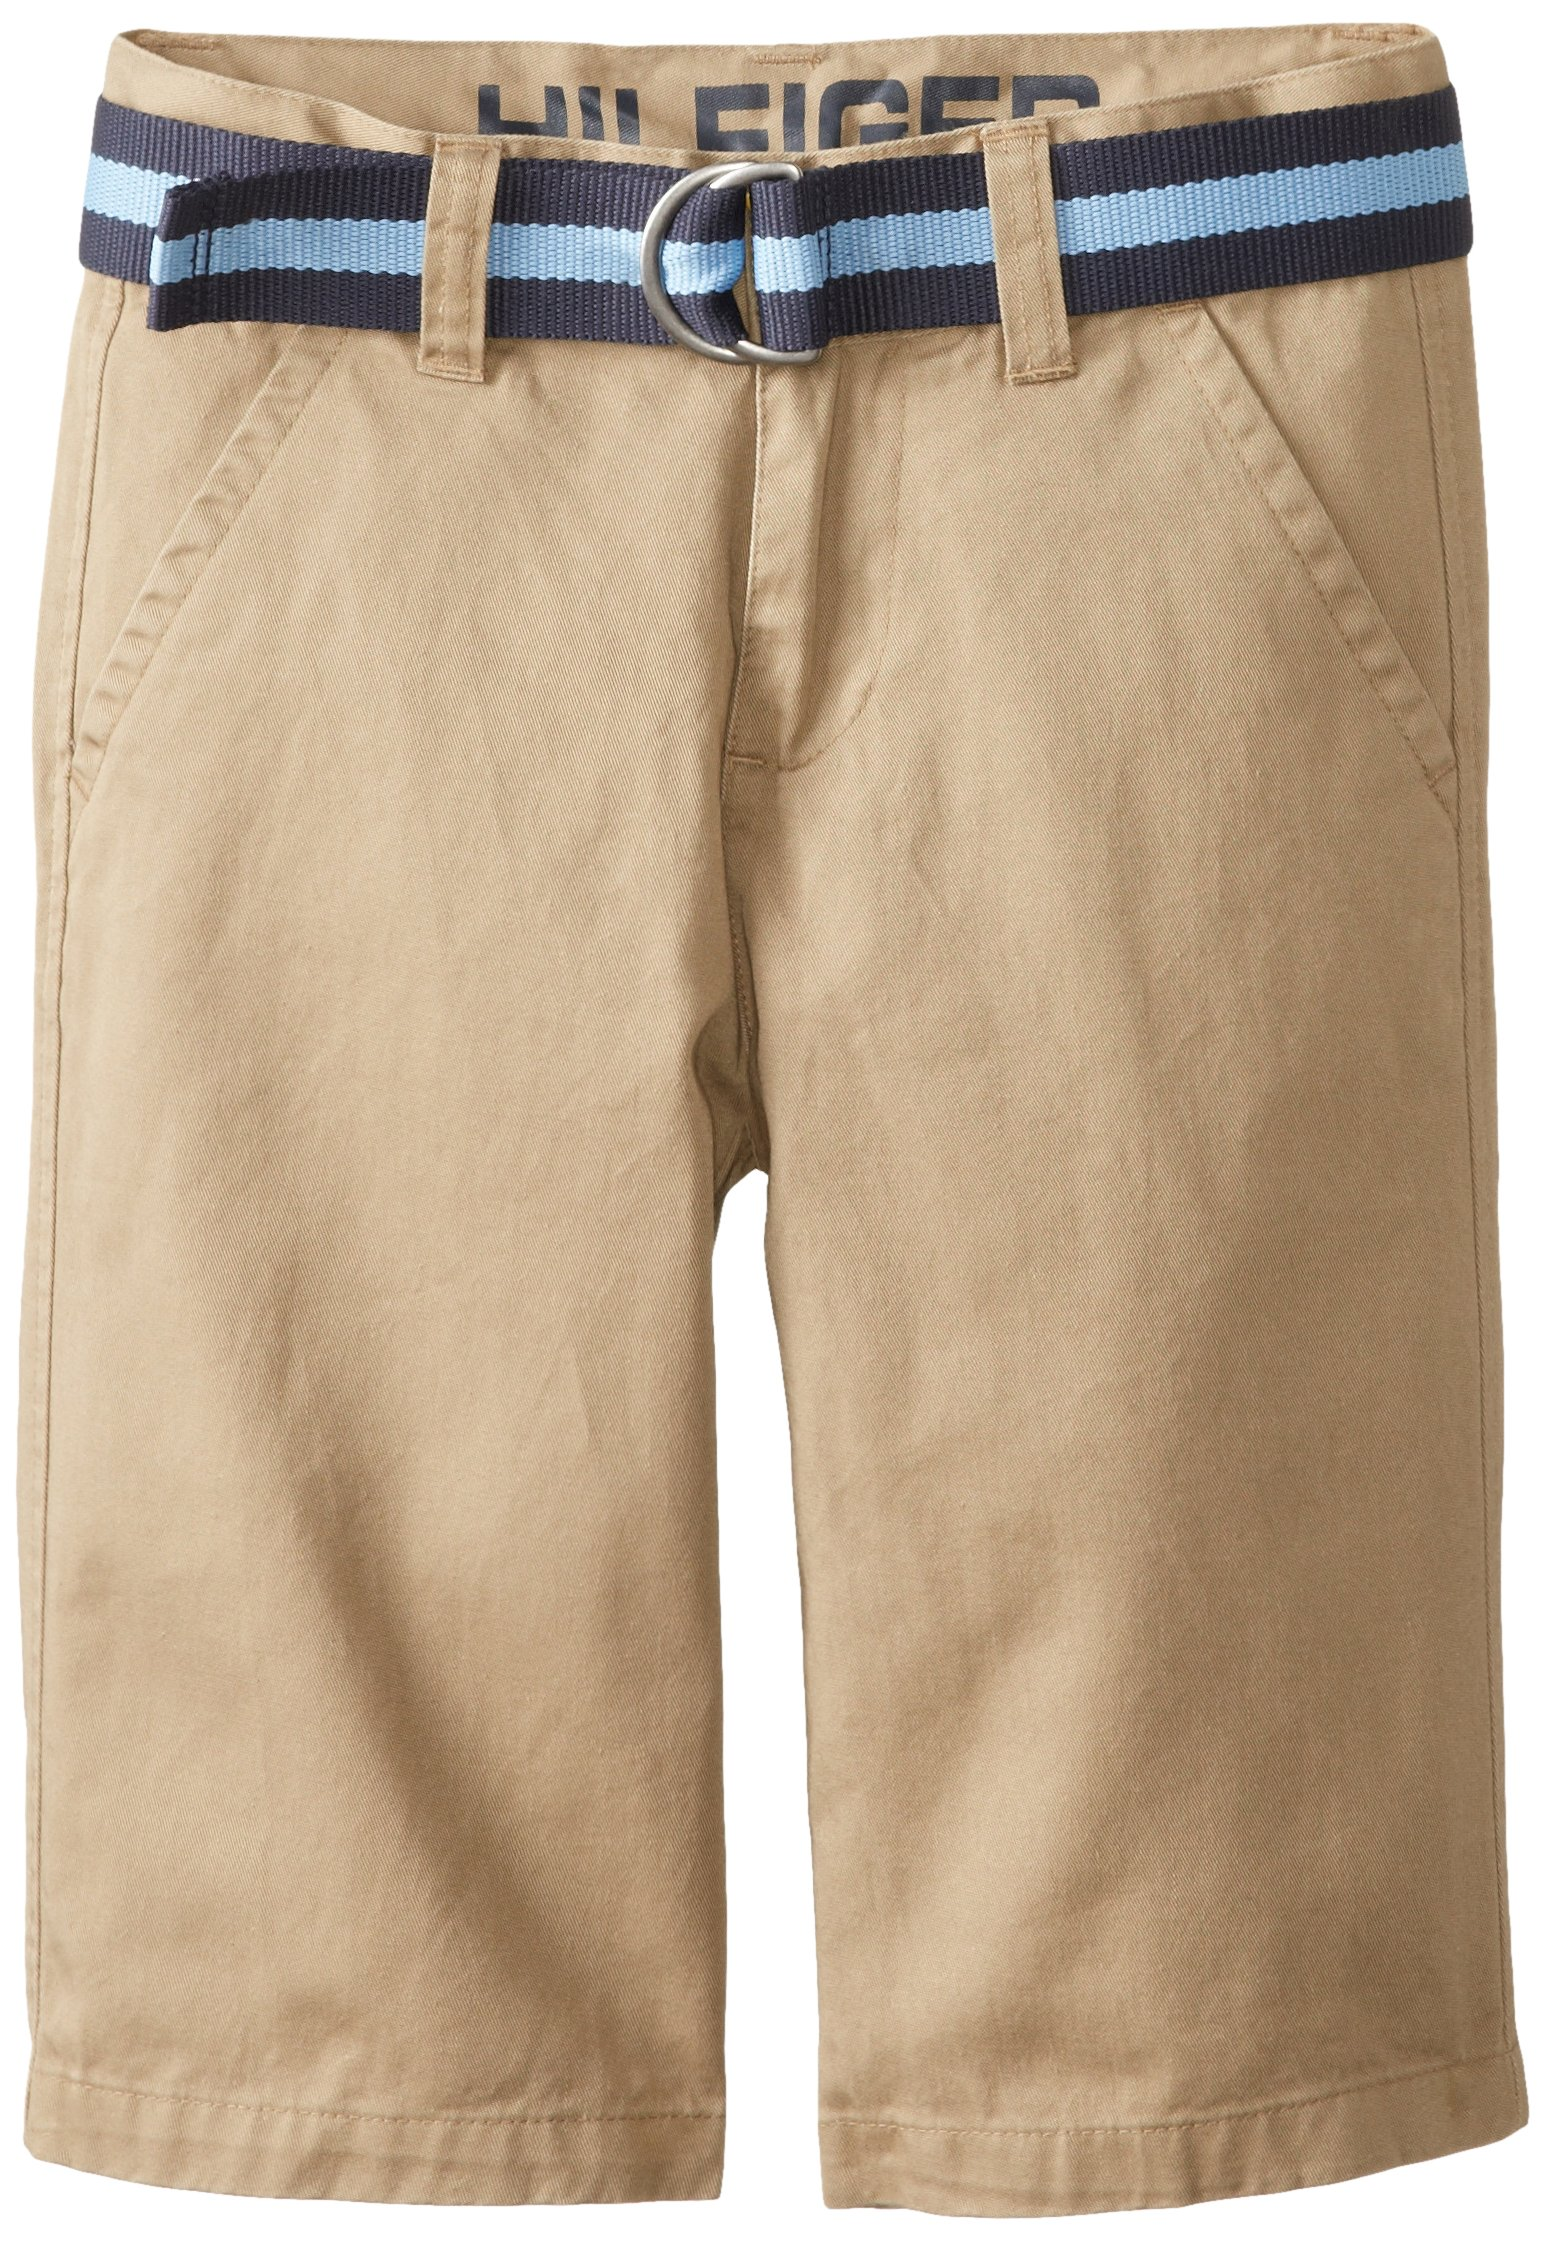 Tommy Hilfiger Big Boys' Belted Flat-Front Short, TH Chino, 10